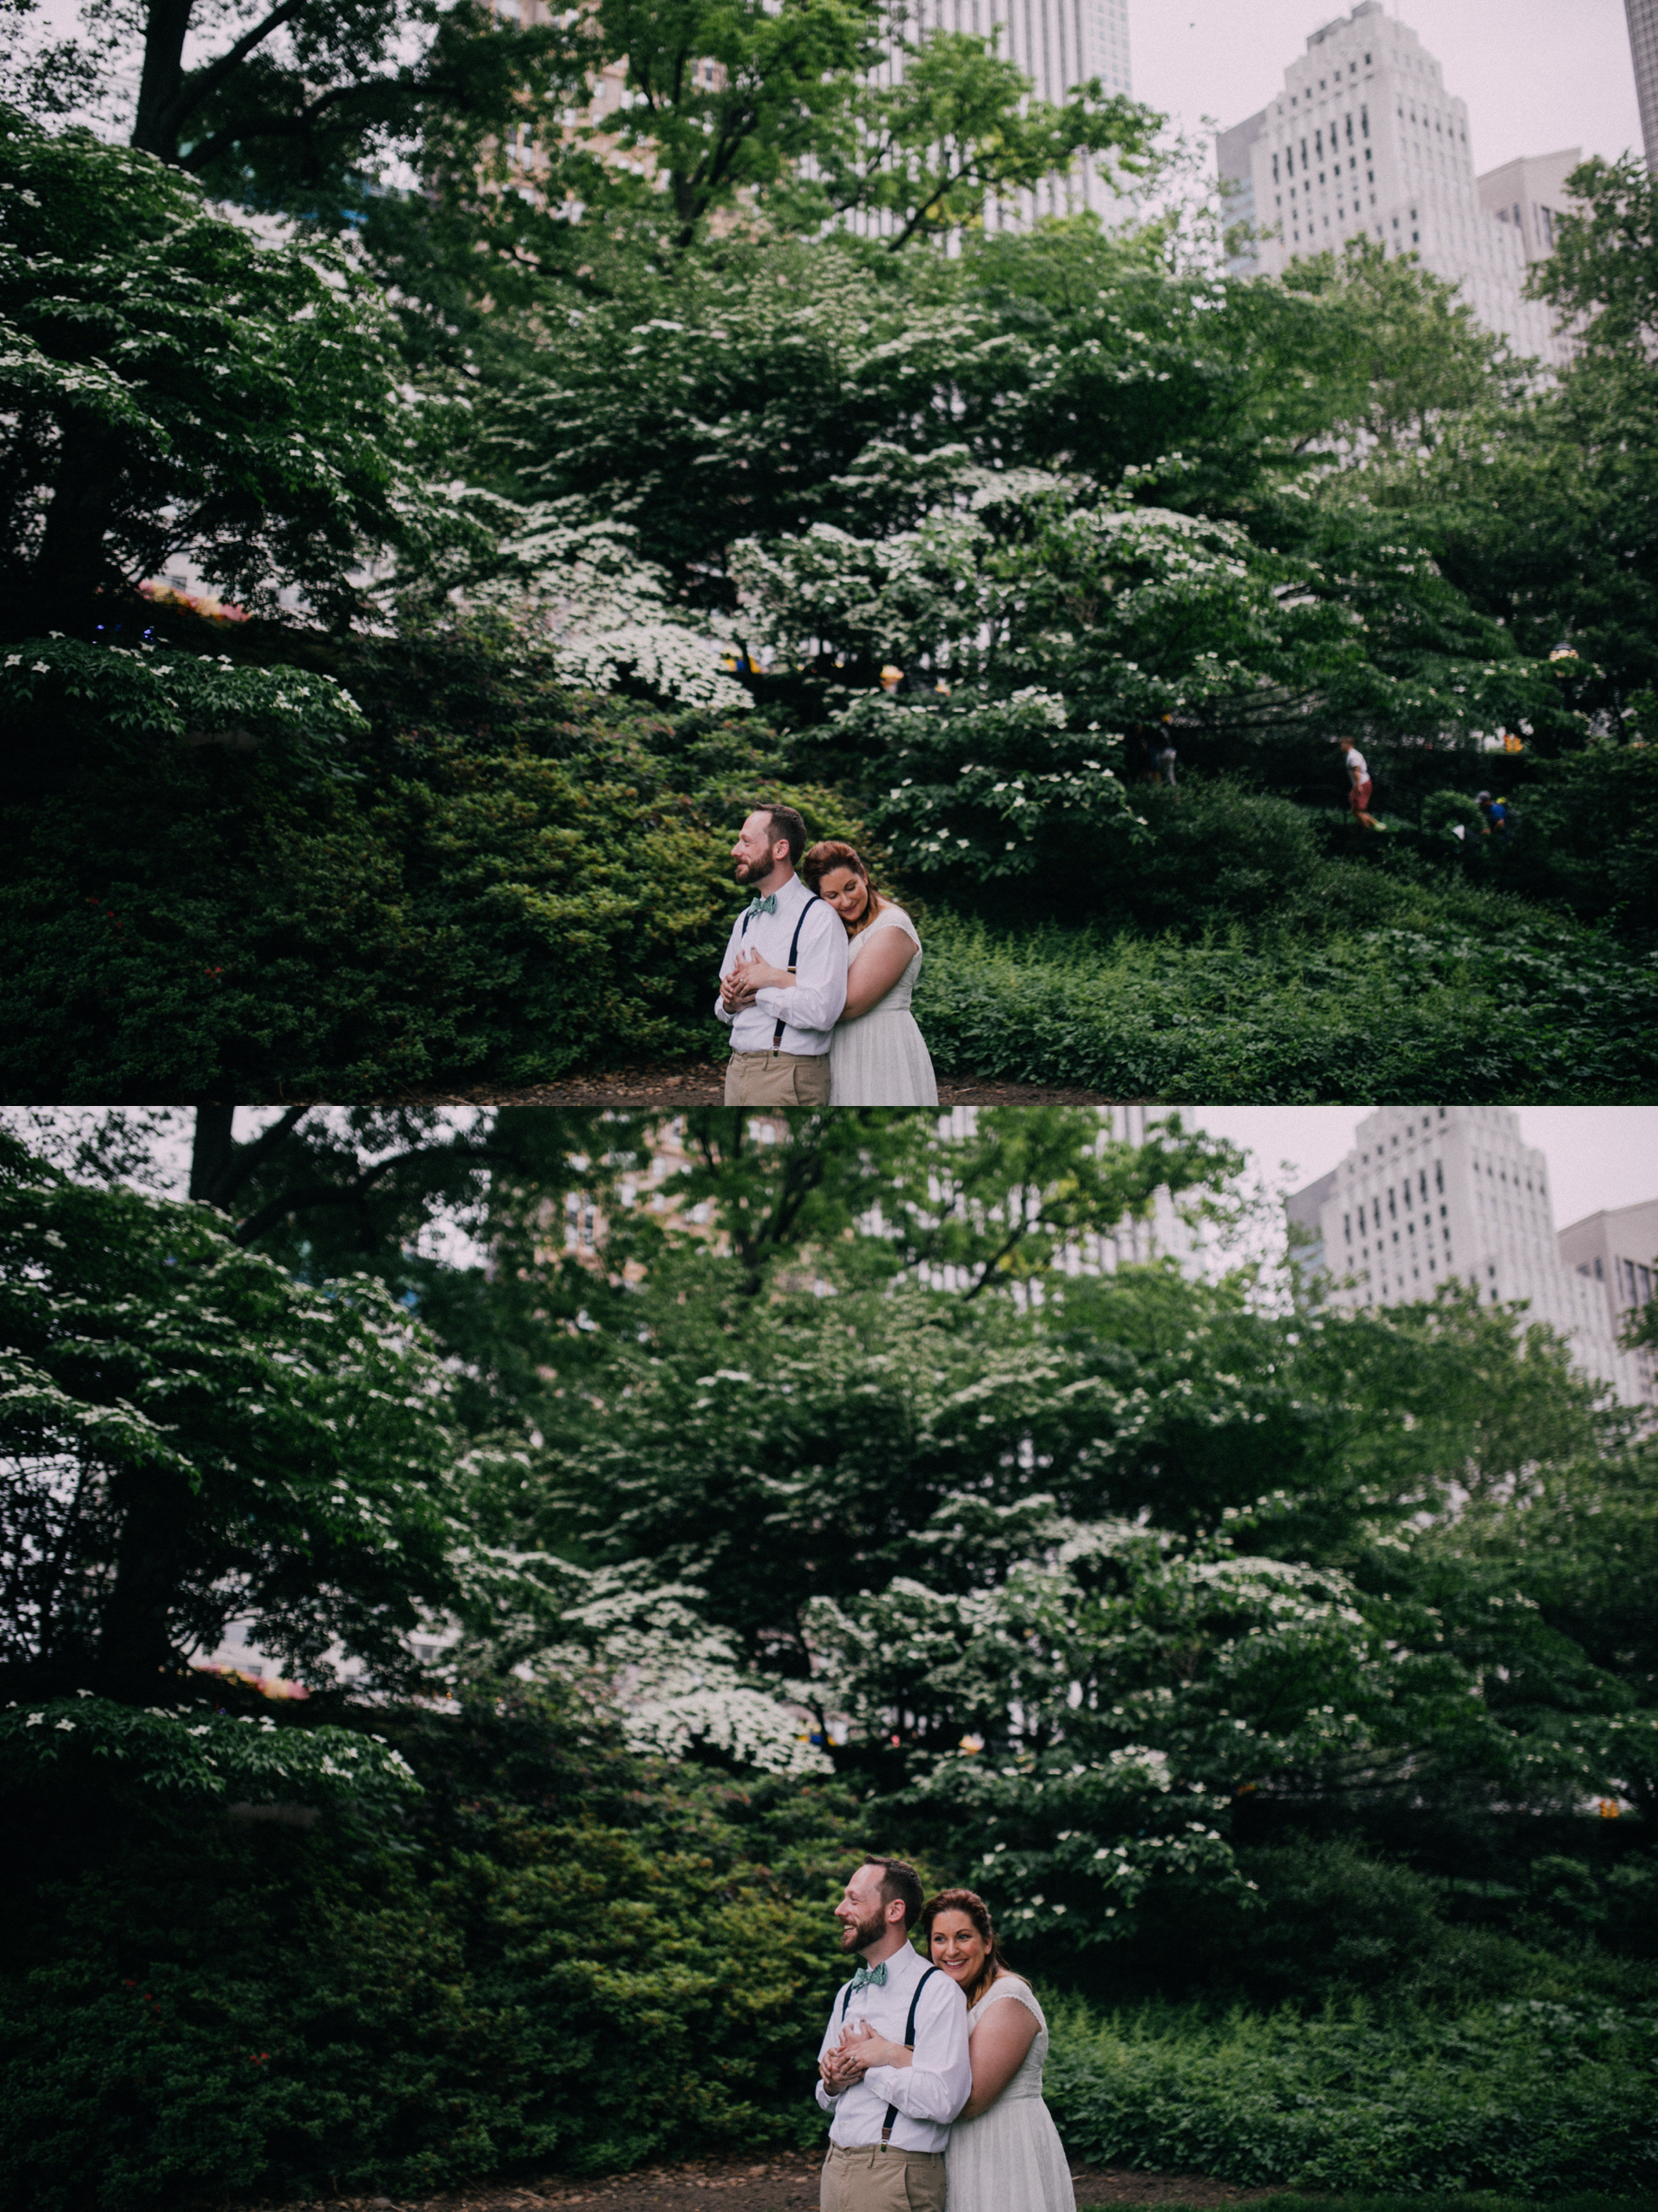 new york city elopement central park courthouse wedding photographer-22.jpg